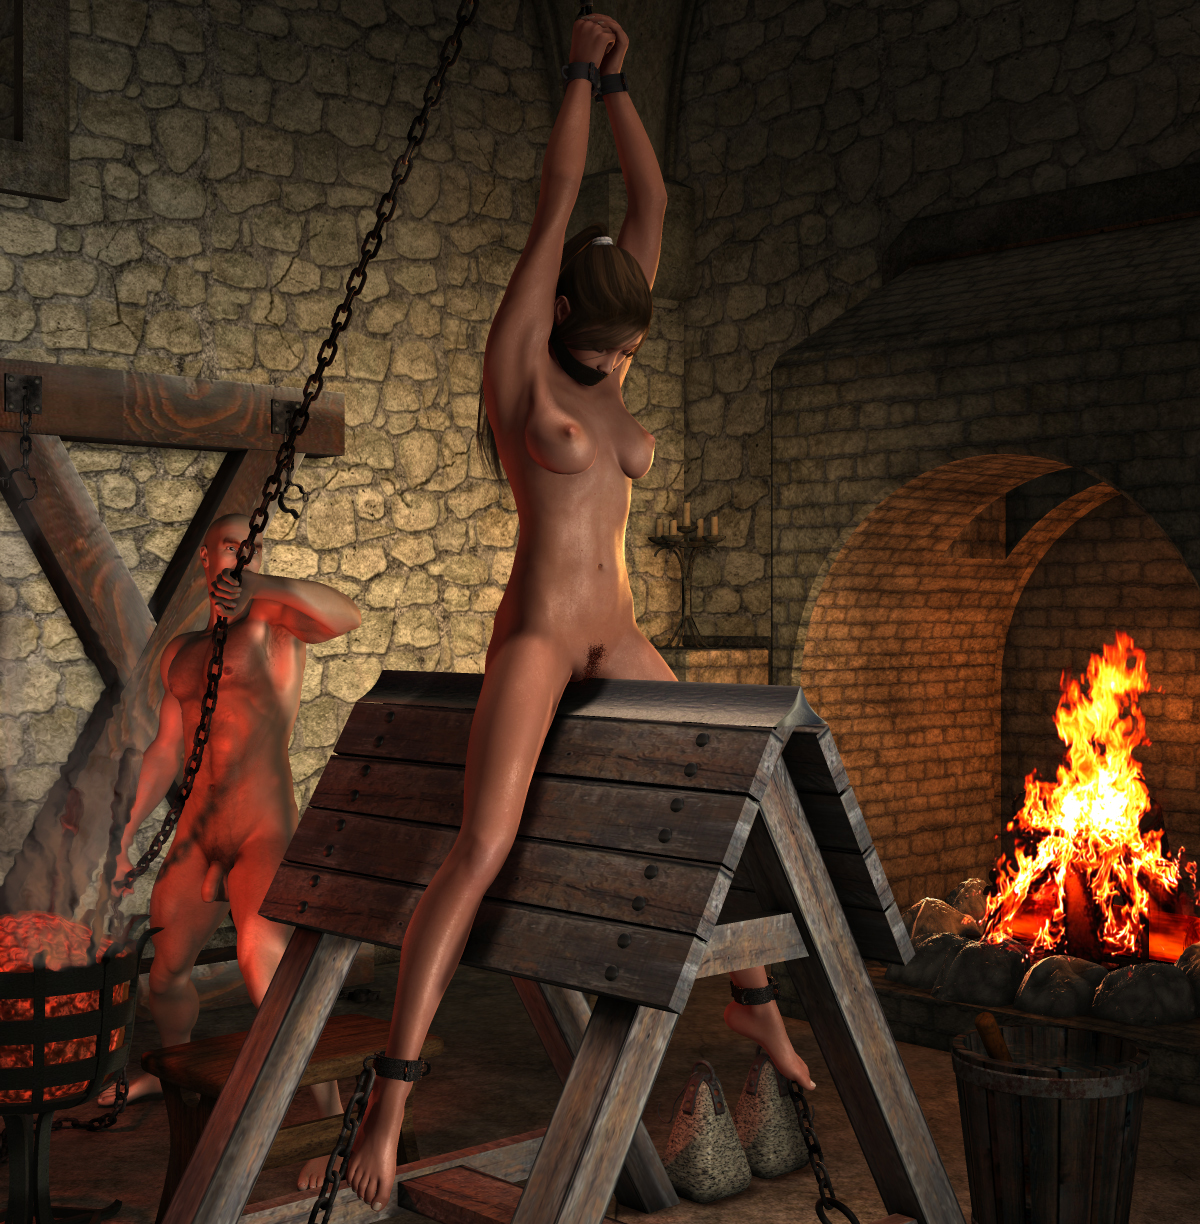 Witches medieval torture porno pics sex thumbs